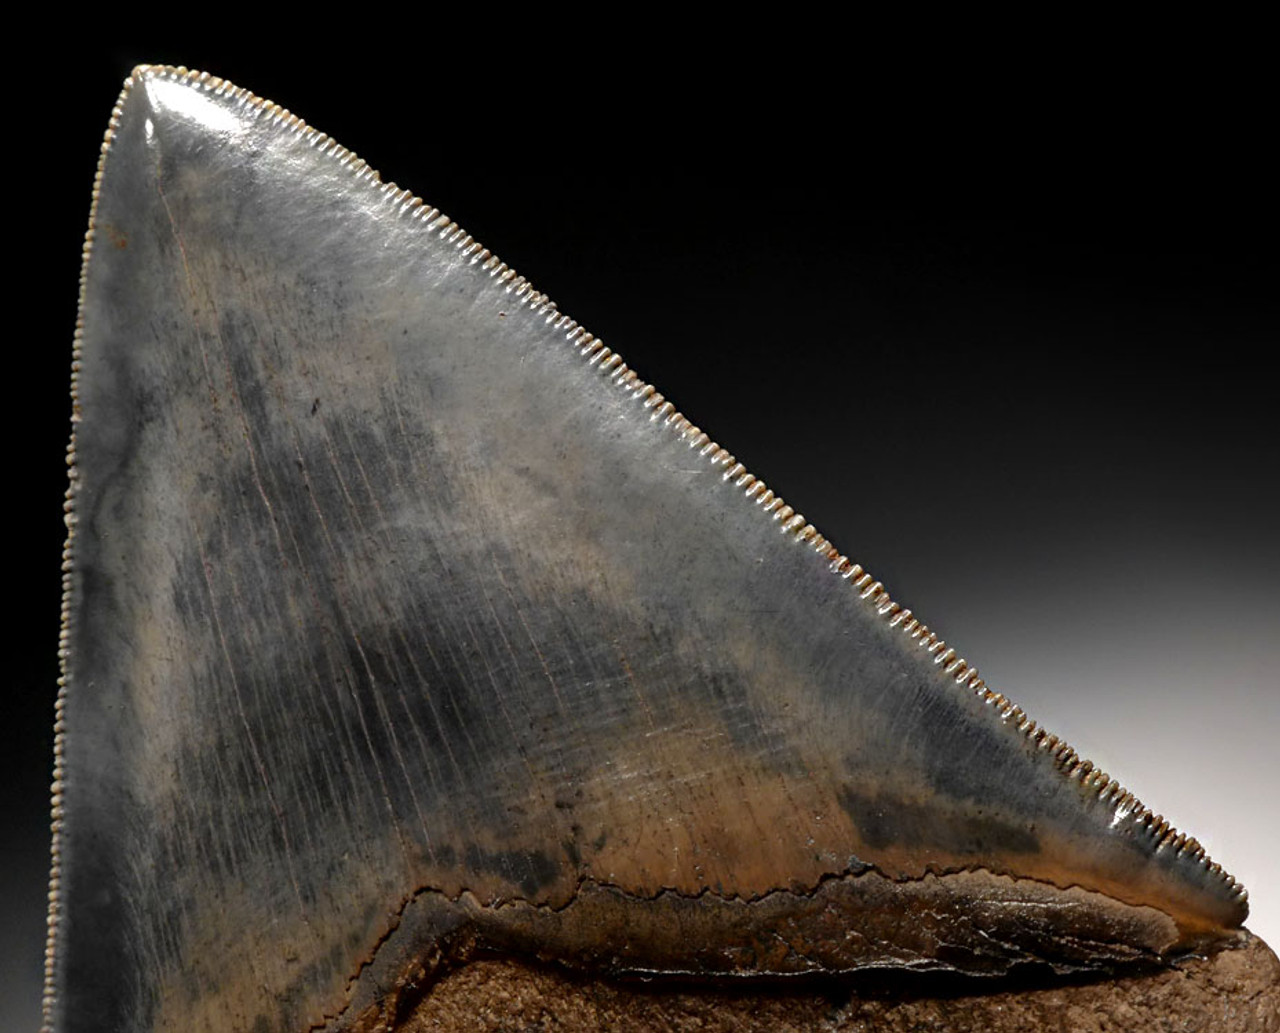 SH6-335 - FINEST GRADE 4.7 INCH MEGALODON TOOTH WITH BLUE-GRAY AND CREAM CHATOYANT ENAMEL